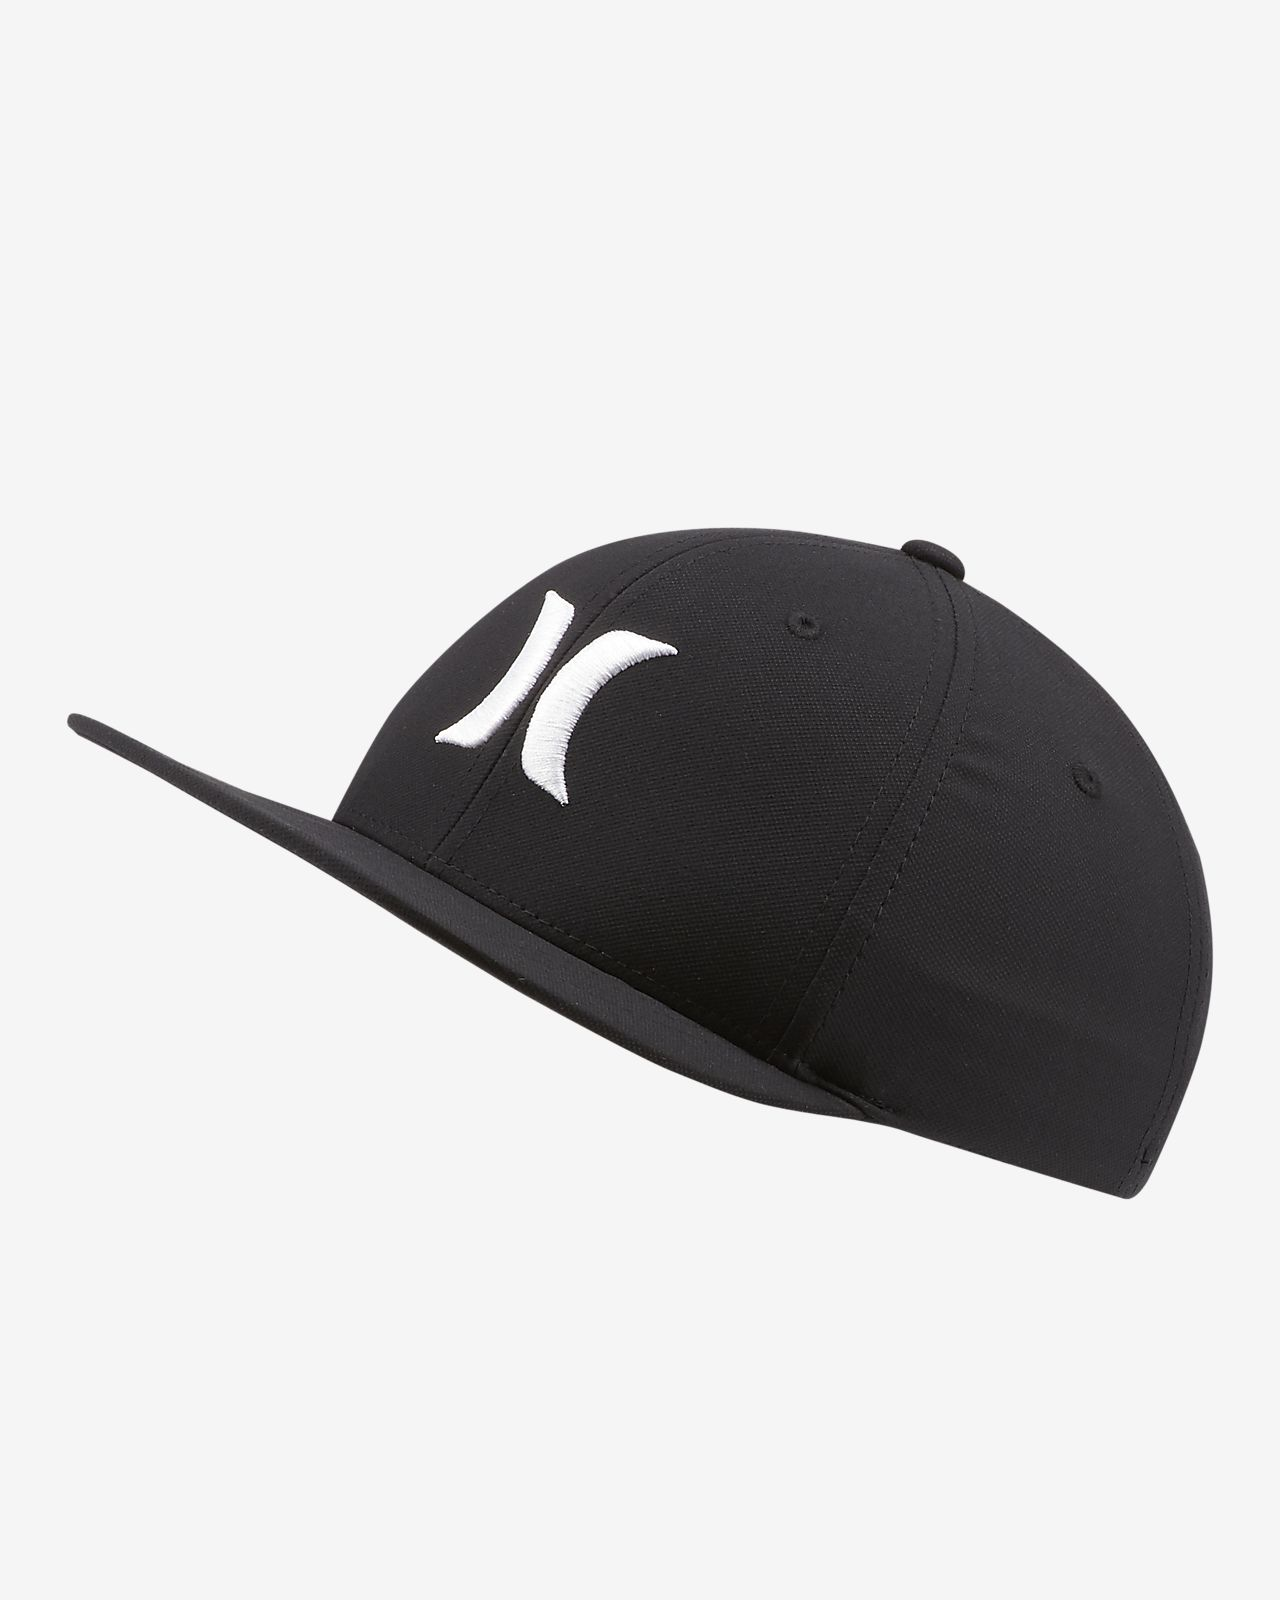 Hurley Dri-FIT One And Only Jungen-Cap. Nike.com BE 8dfc9f5ec4b